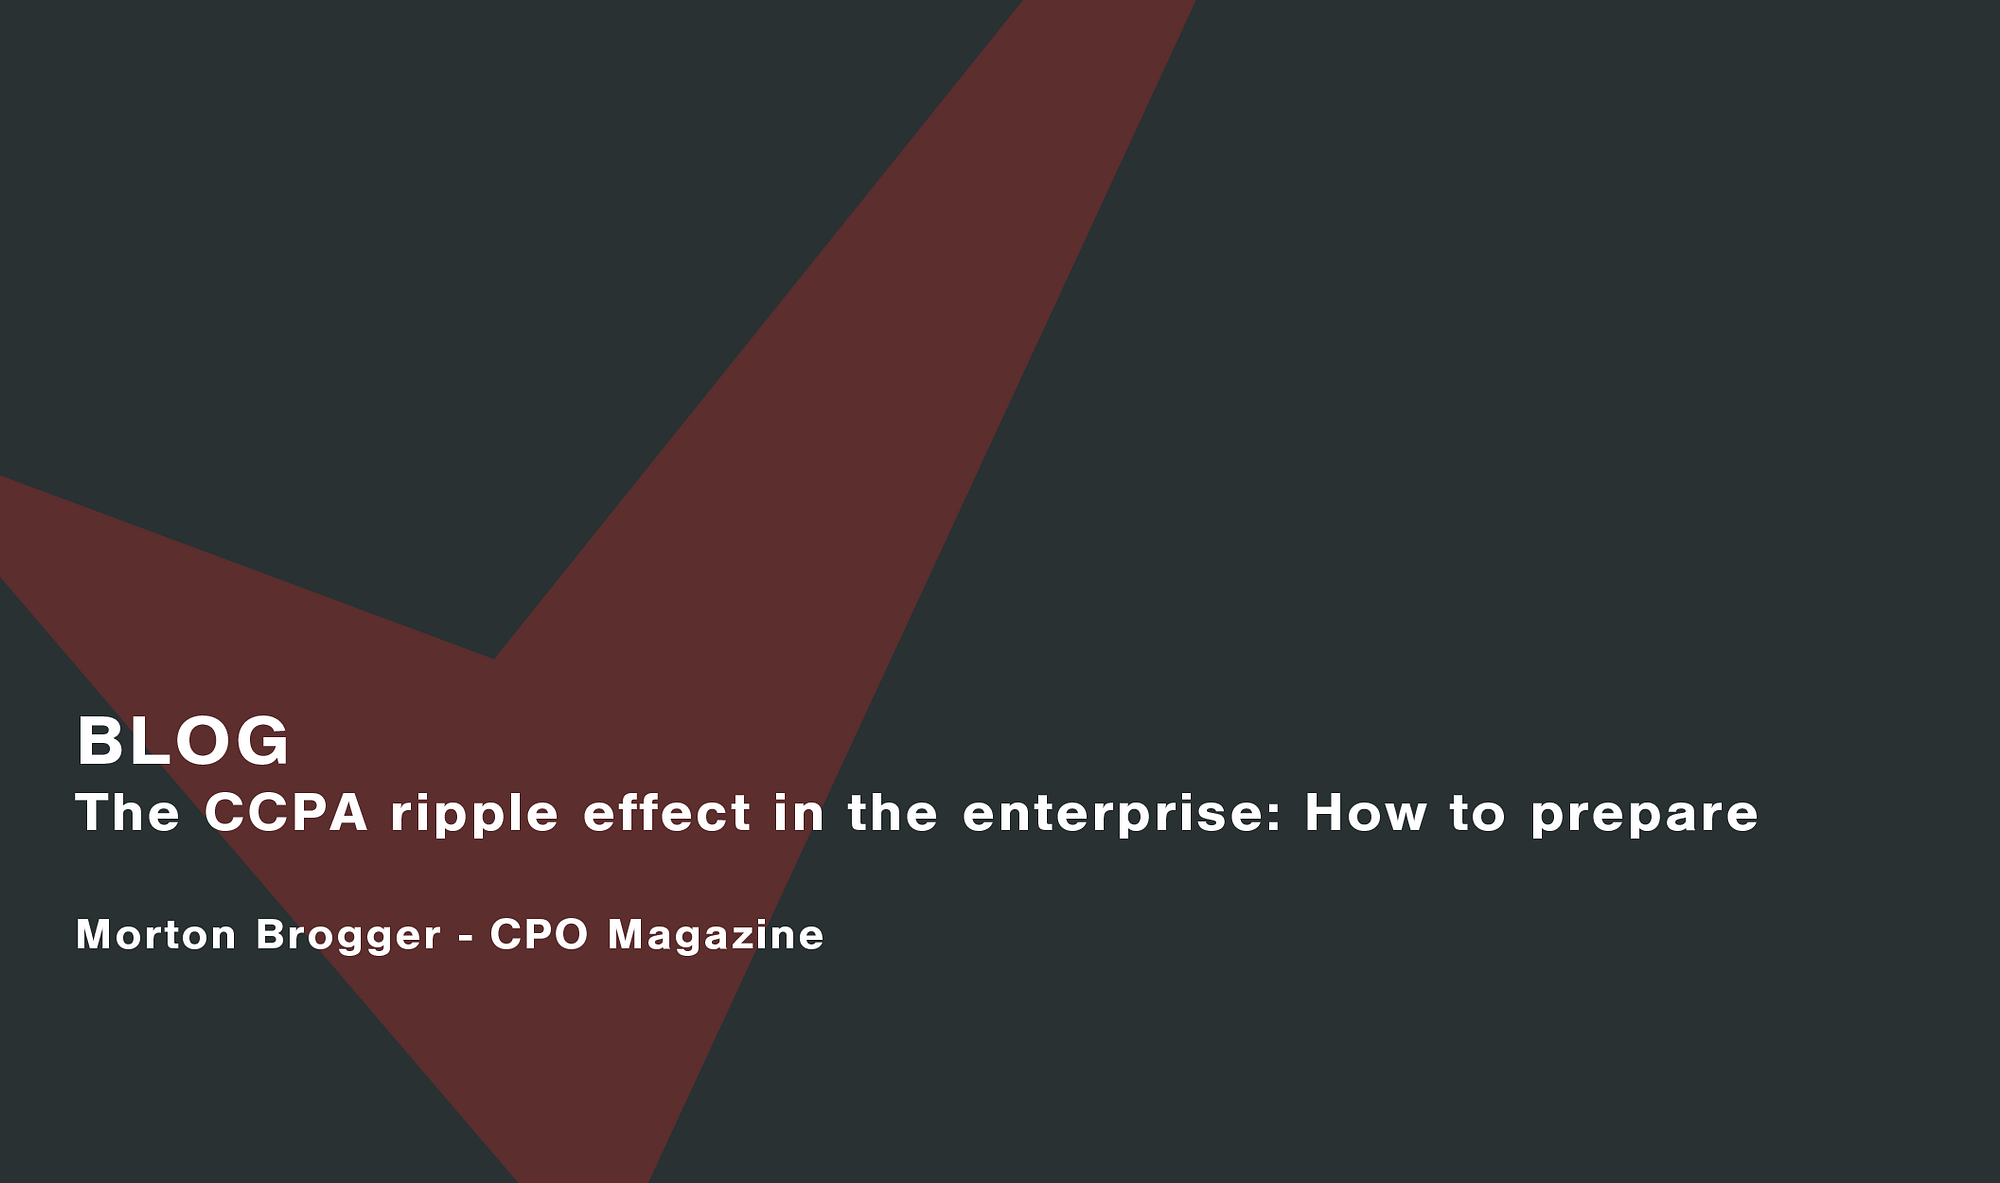 The-CCPA-ripple-effect-in-the-enterprise-How-to-prepare